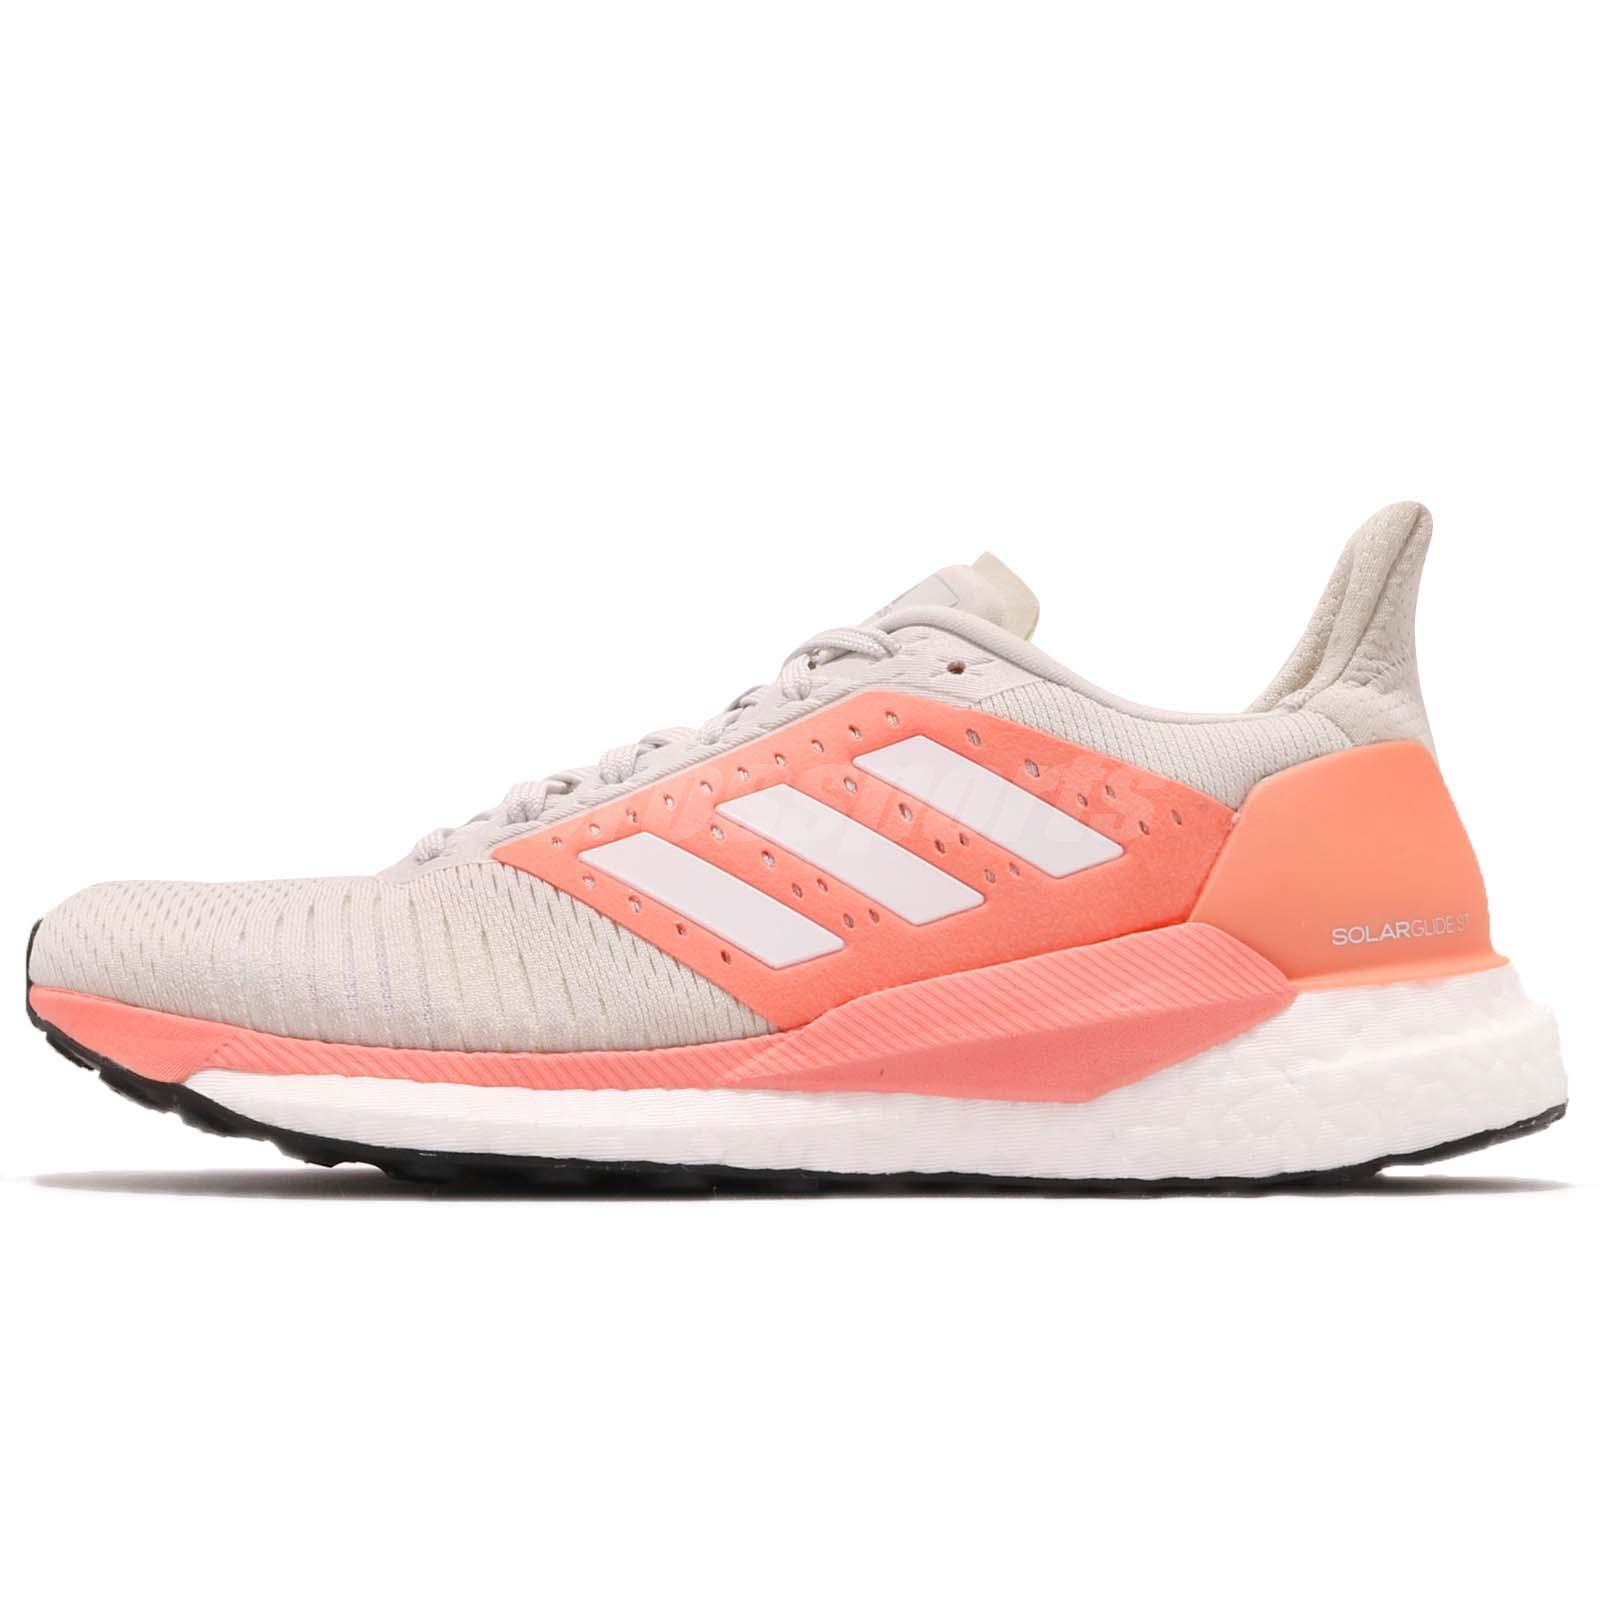 the best attitude a2c0c 18c53 Details about adidas Solar Glide ST W Boost Grey Chalk Coral Women Running  Shoe Sneaker BB6615